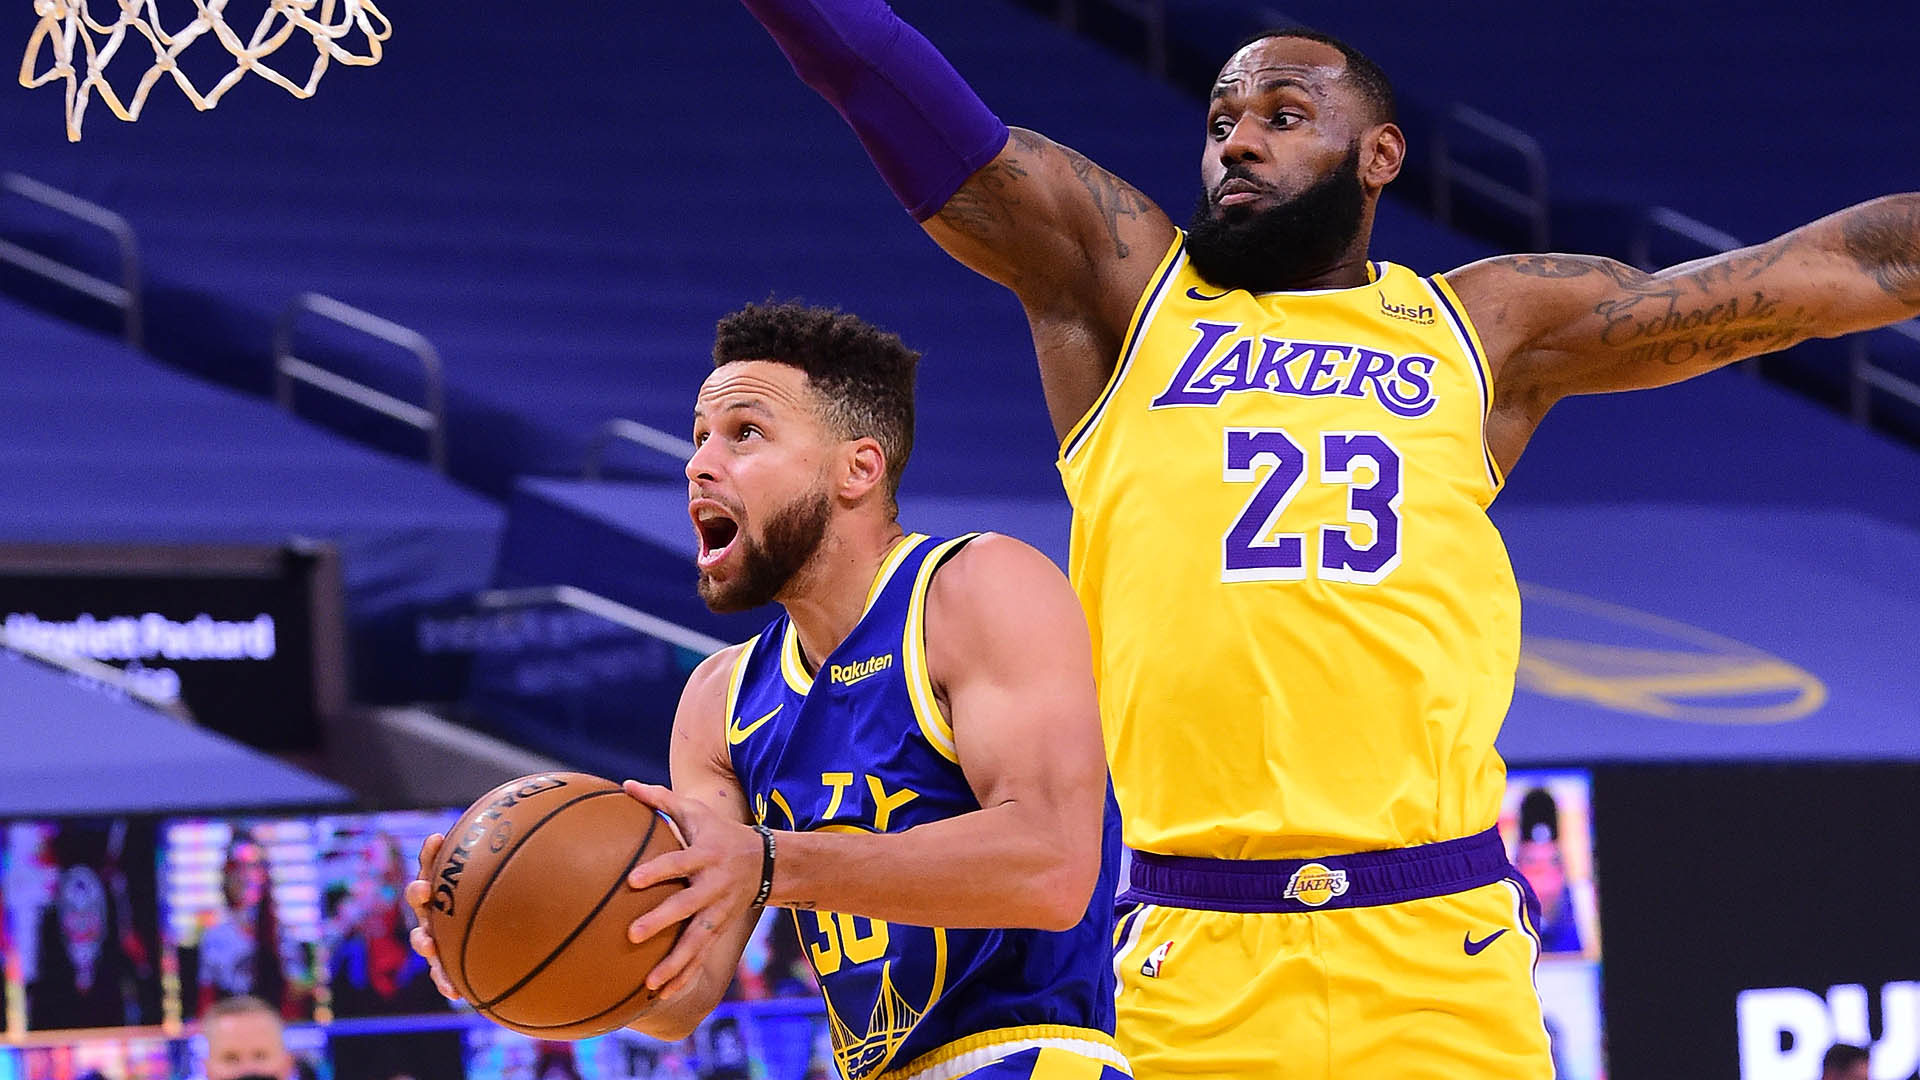 LeBron's Lakers or Steph's Warriors: Who has edge?